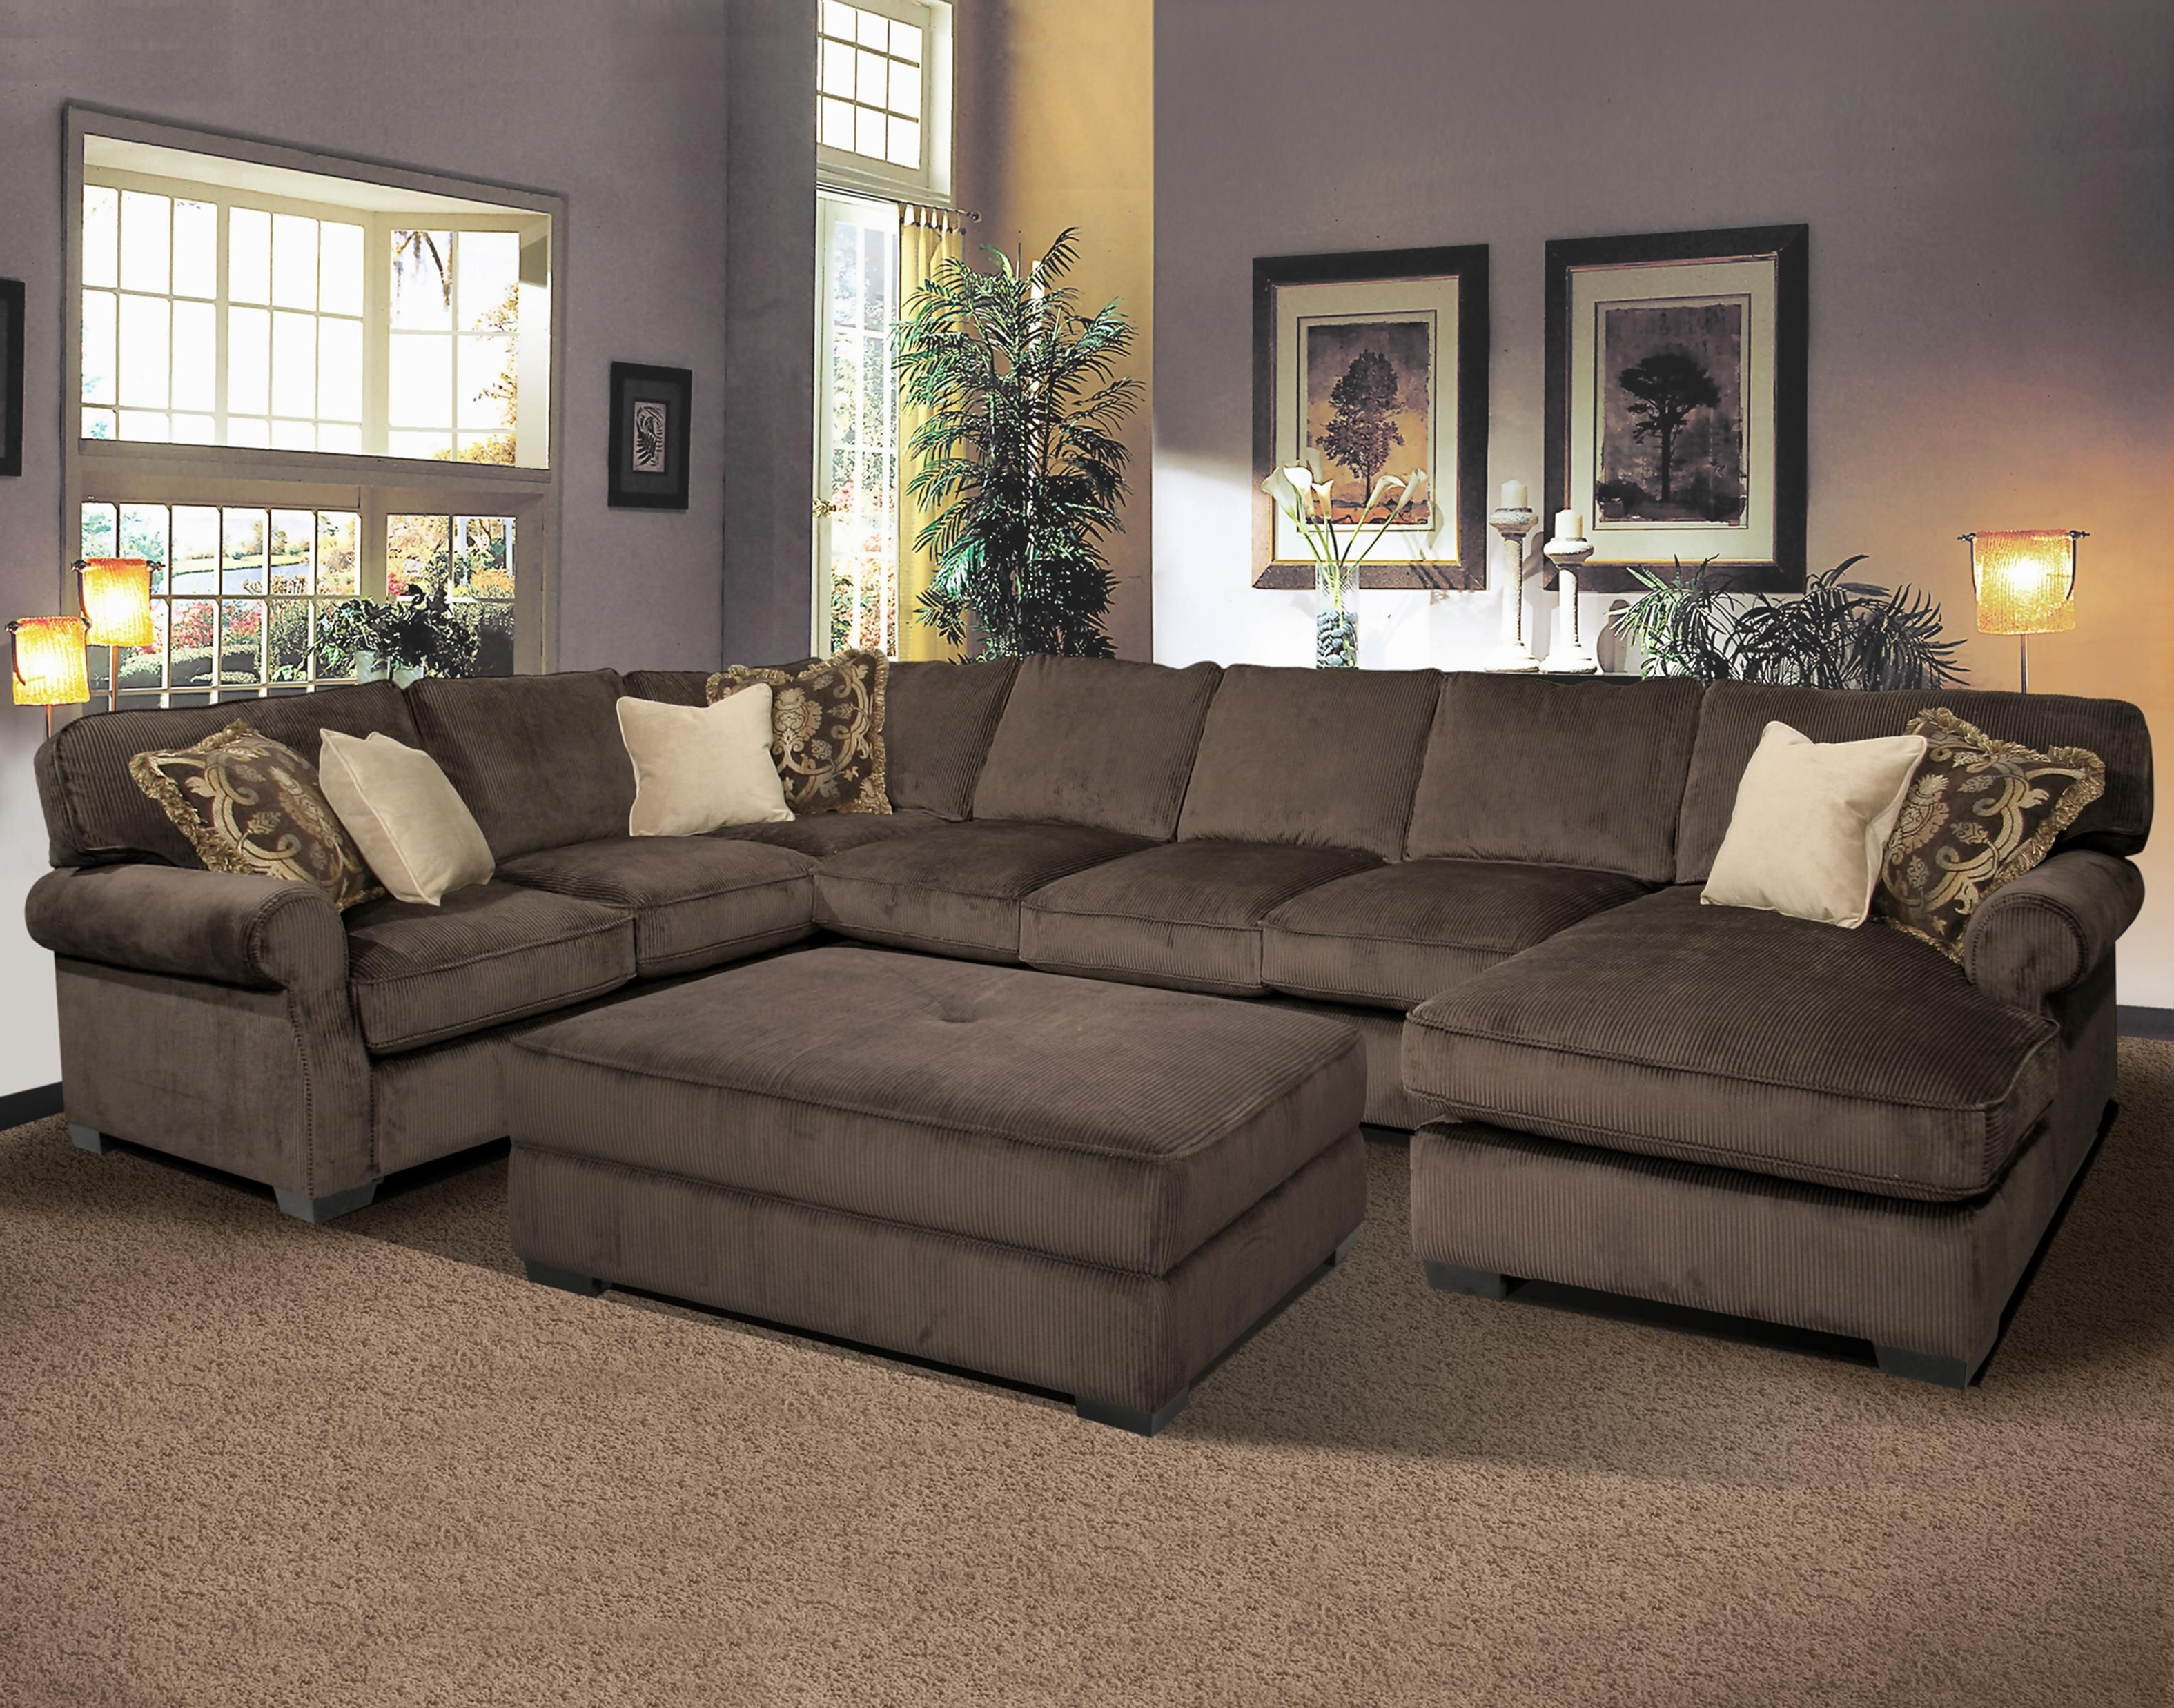 2018 Grand Island Oversized Cocktail Ottoman For Sectional Sofa Pertaining To Microfiber Sectional Sofas (View 1 of 20)